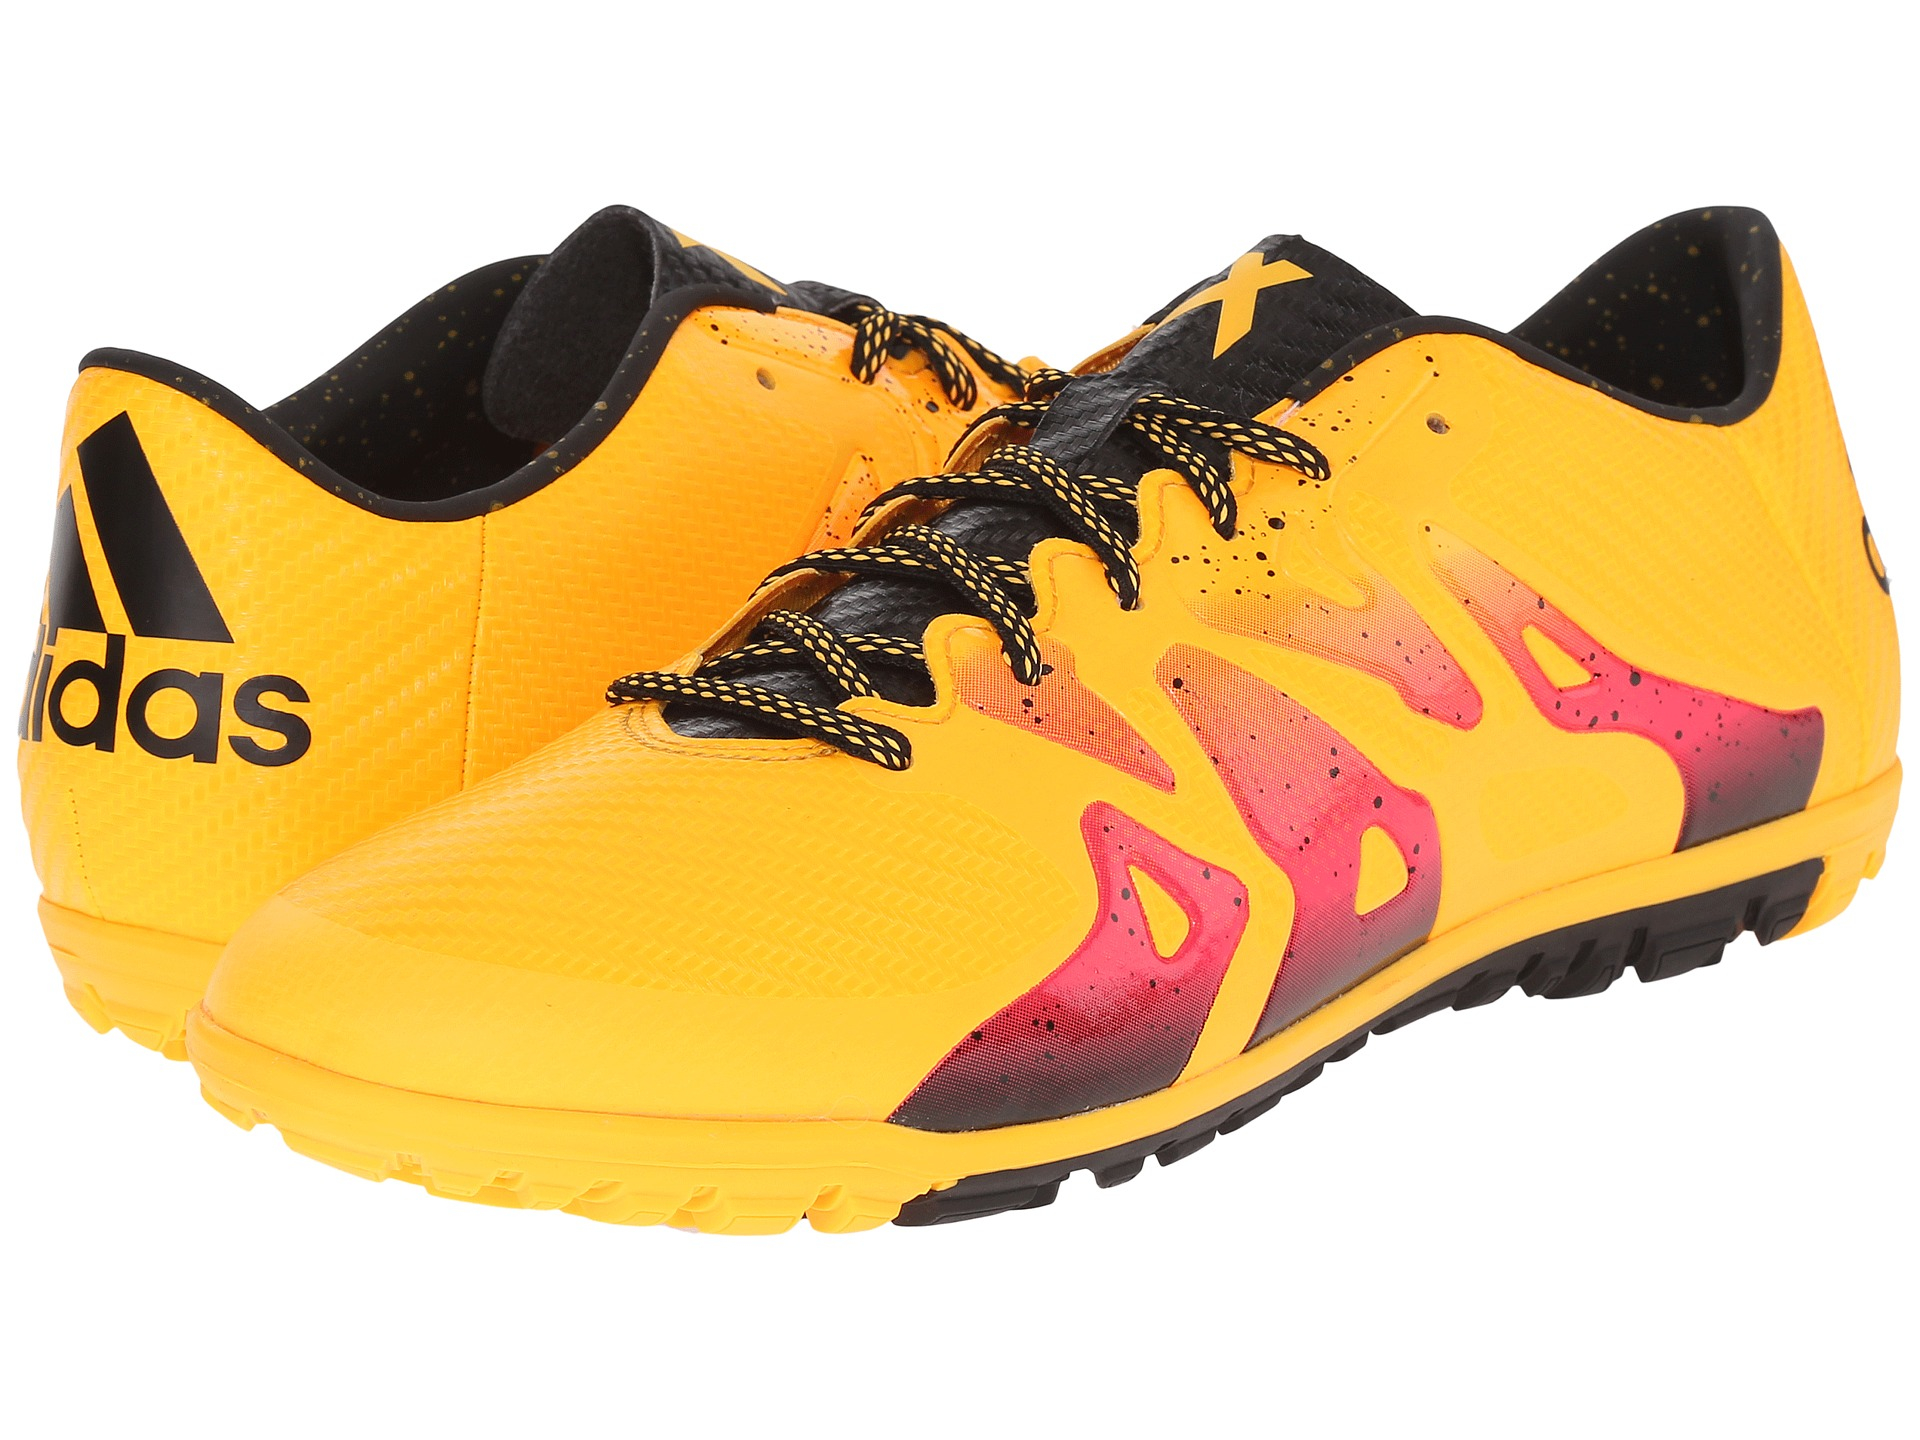 adidas x 15.3 tf review